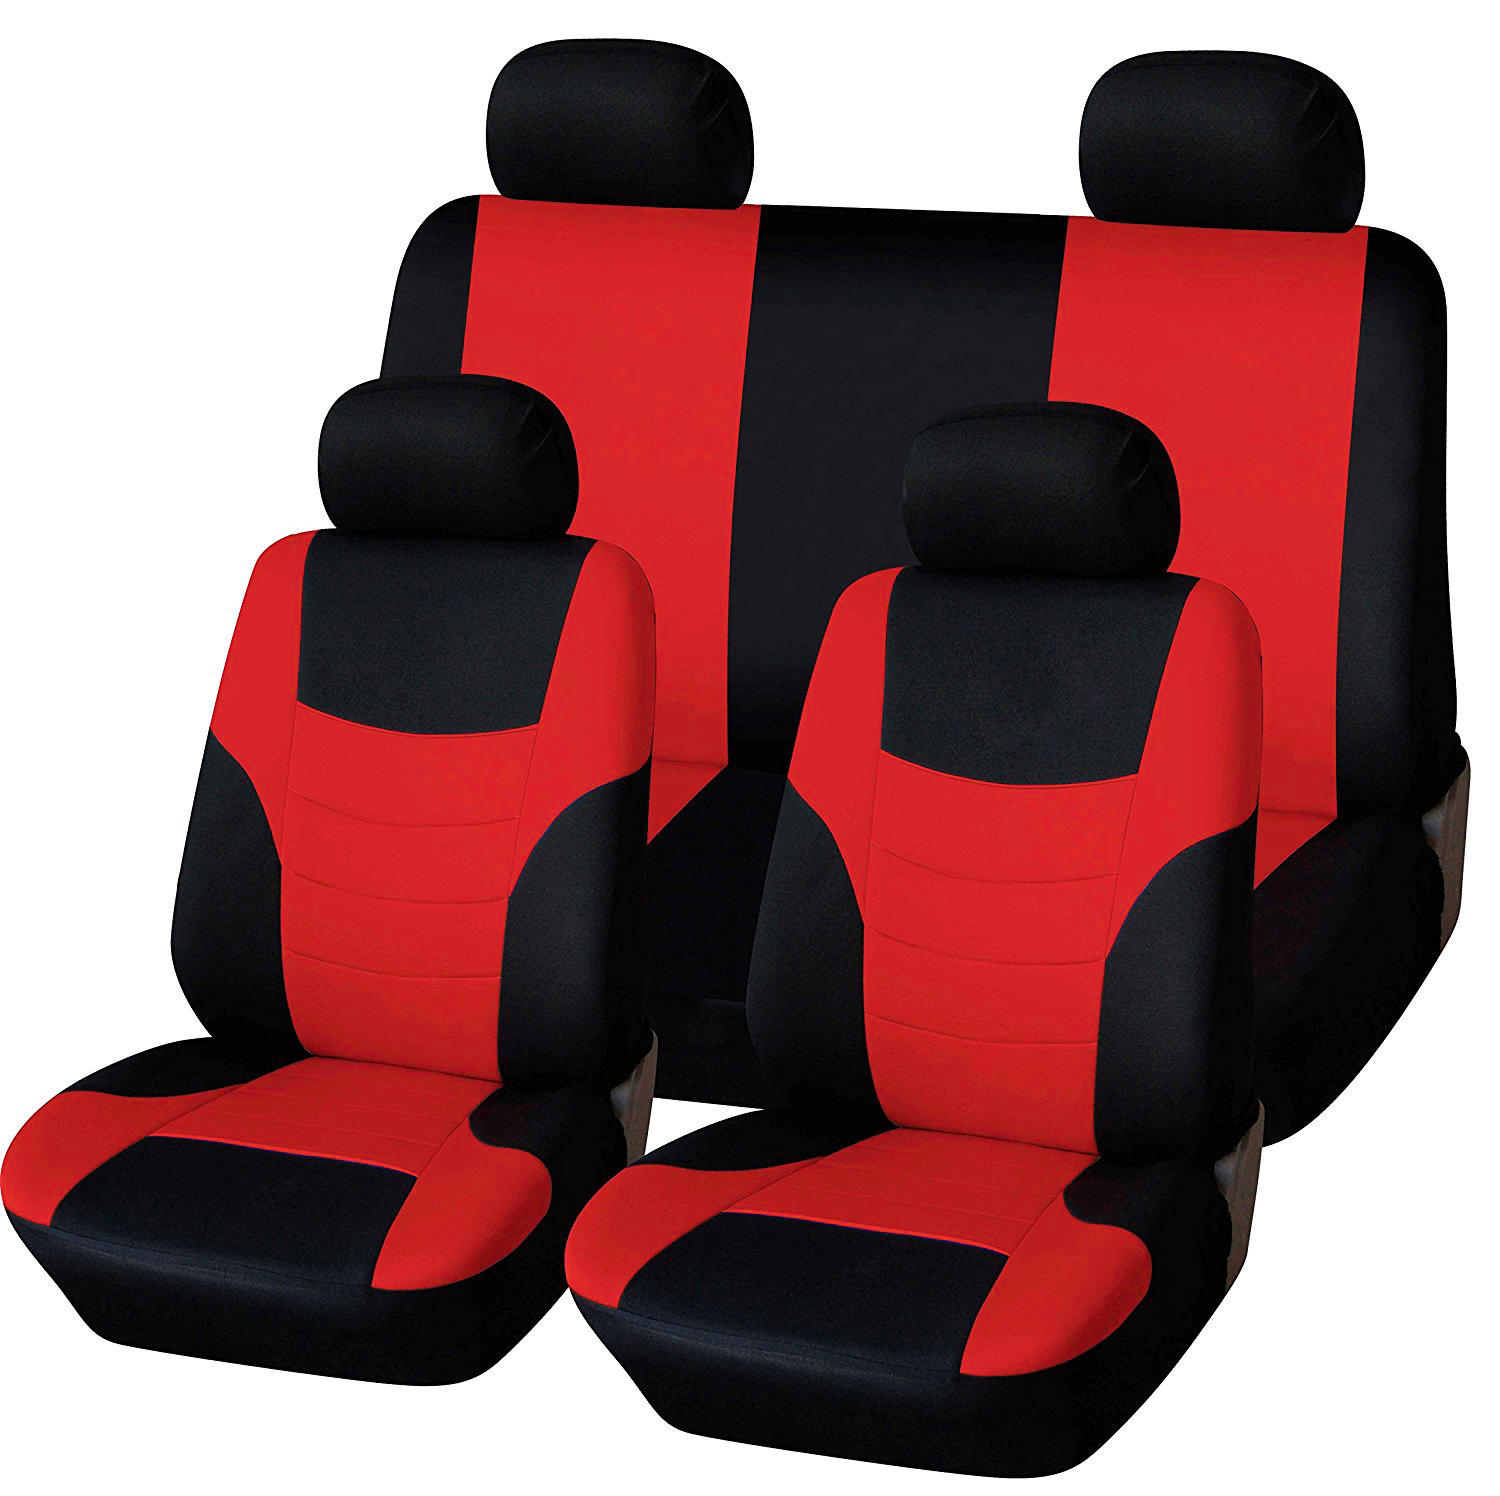 8Pcs Polyester Fabric Car Full Seat Cover Cushion